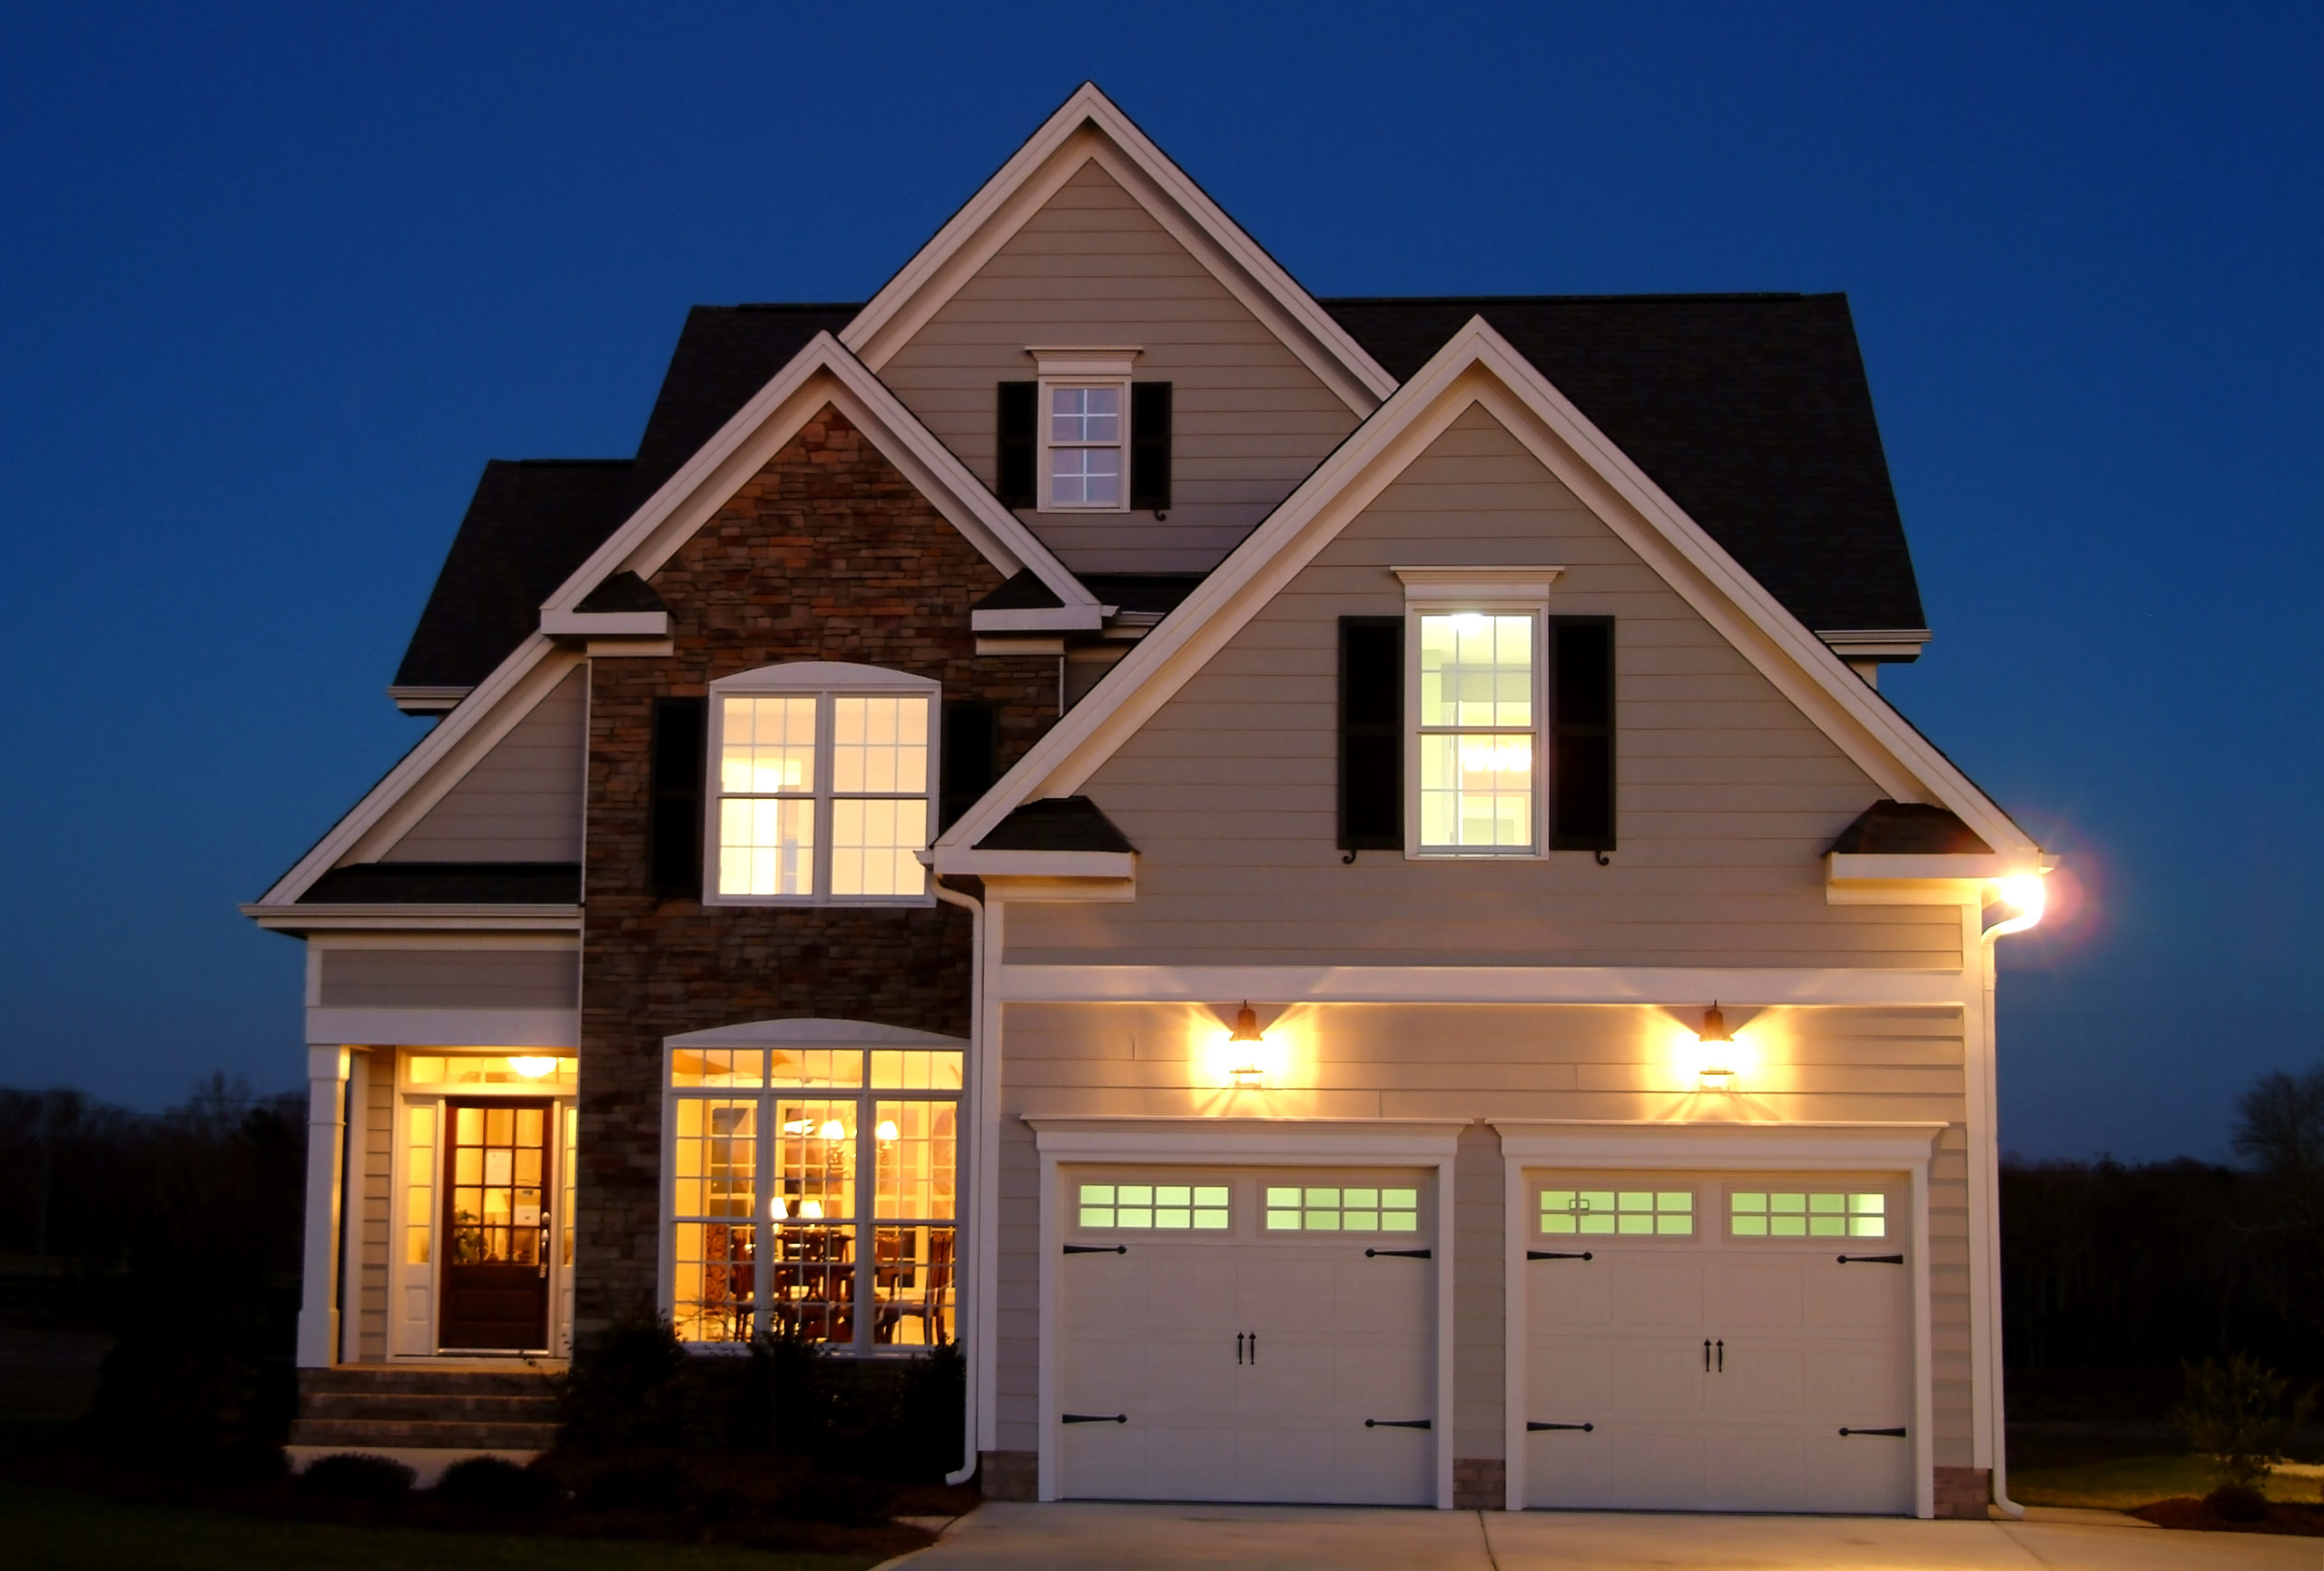 Two story home with two car garage in front of home - lights on at night